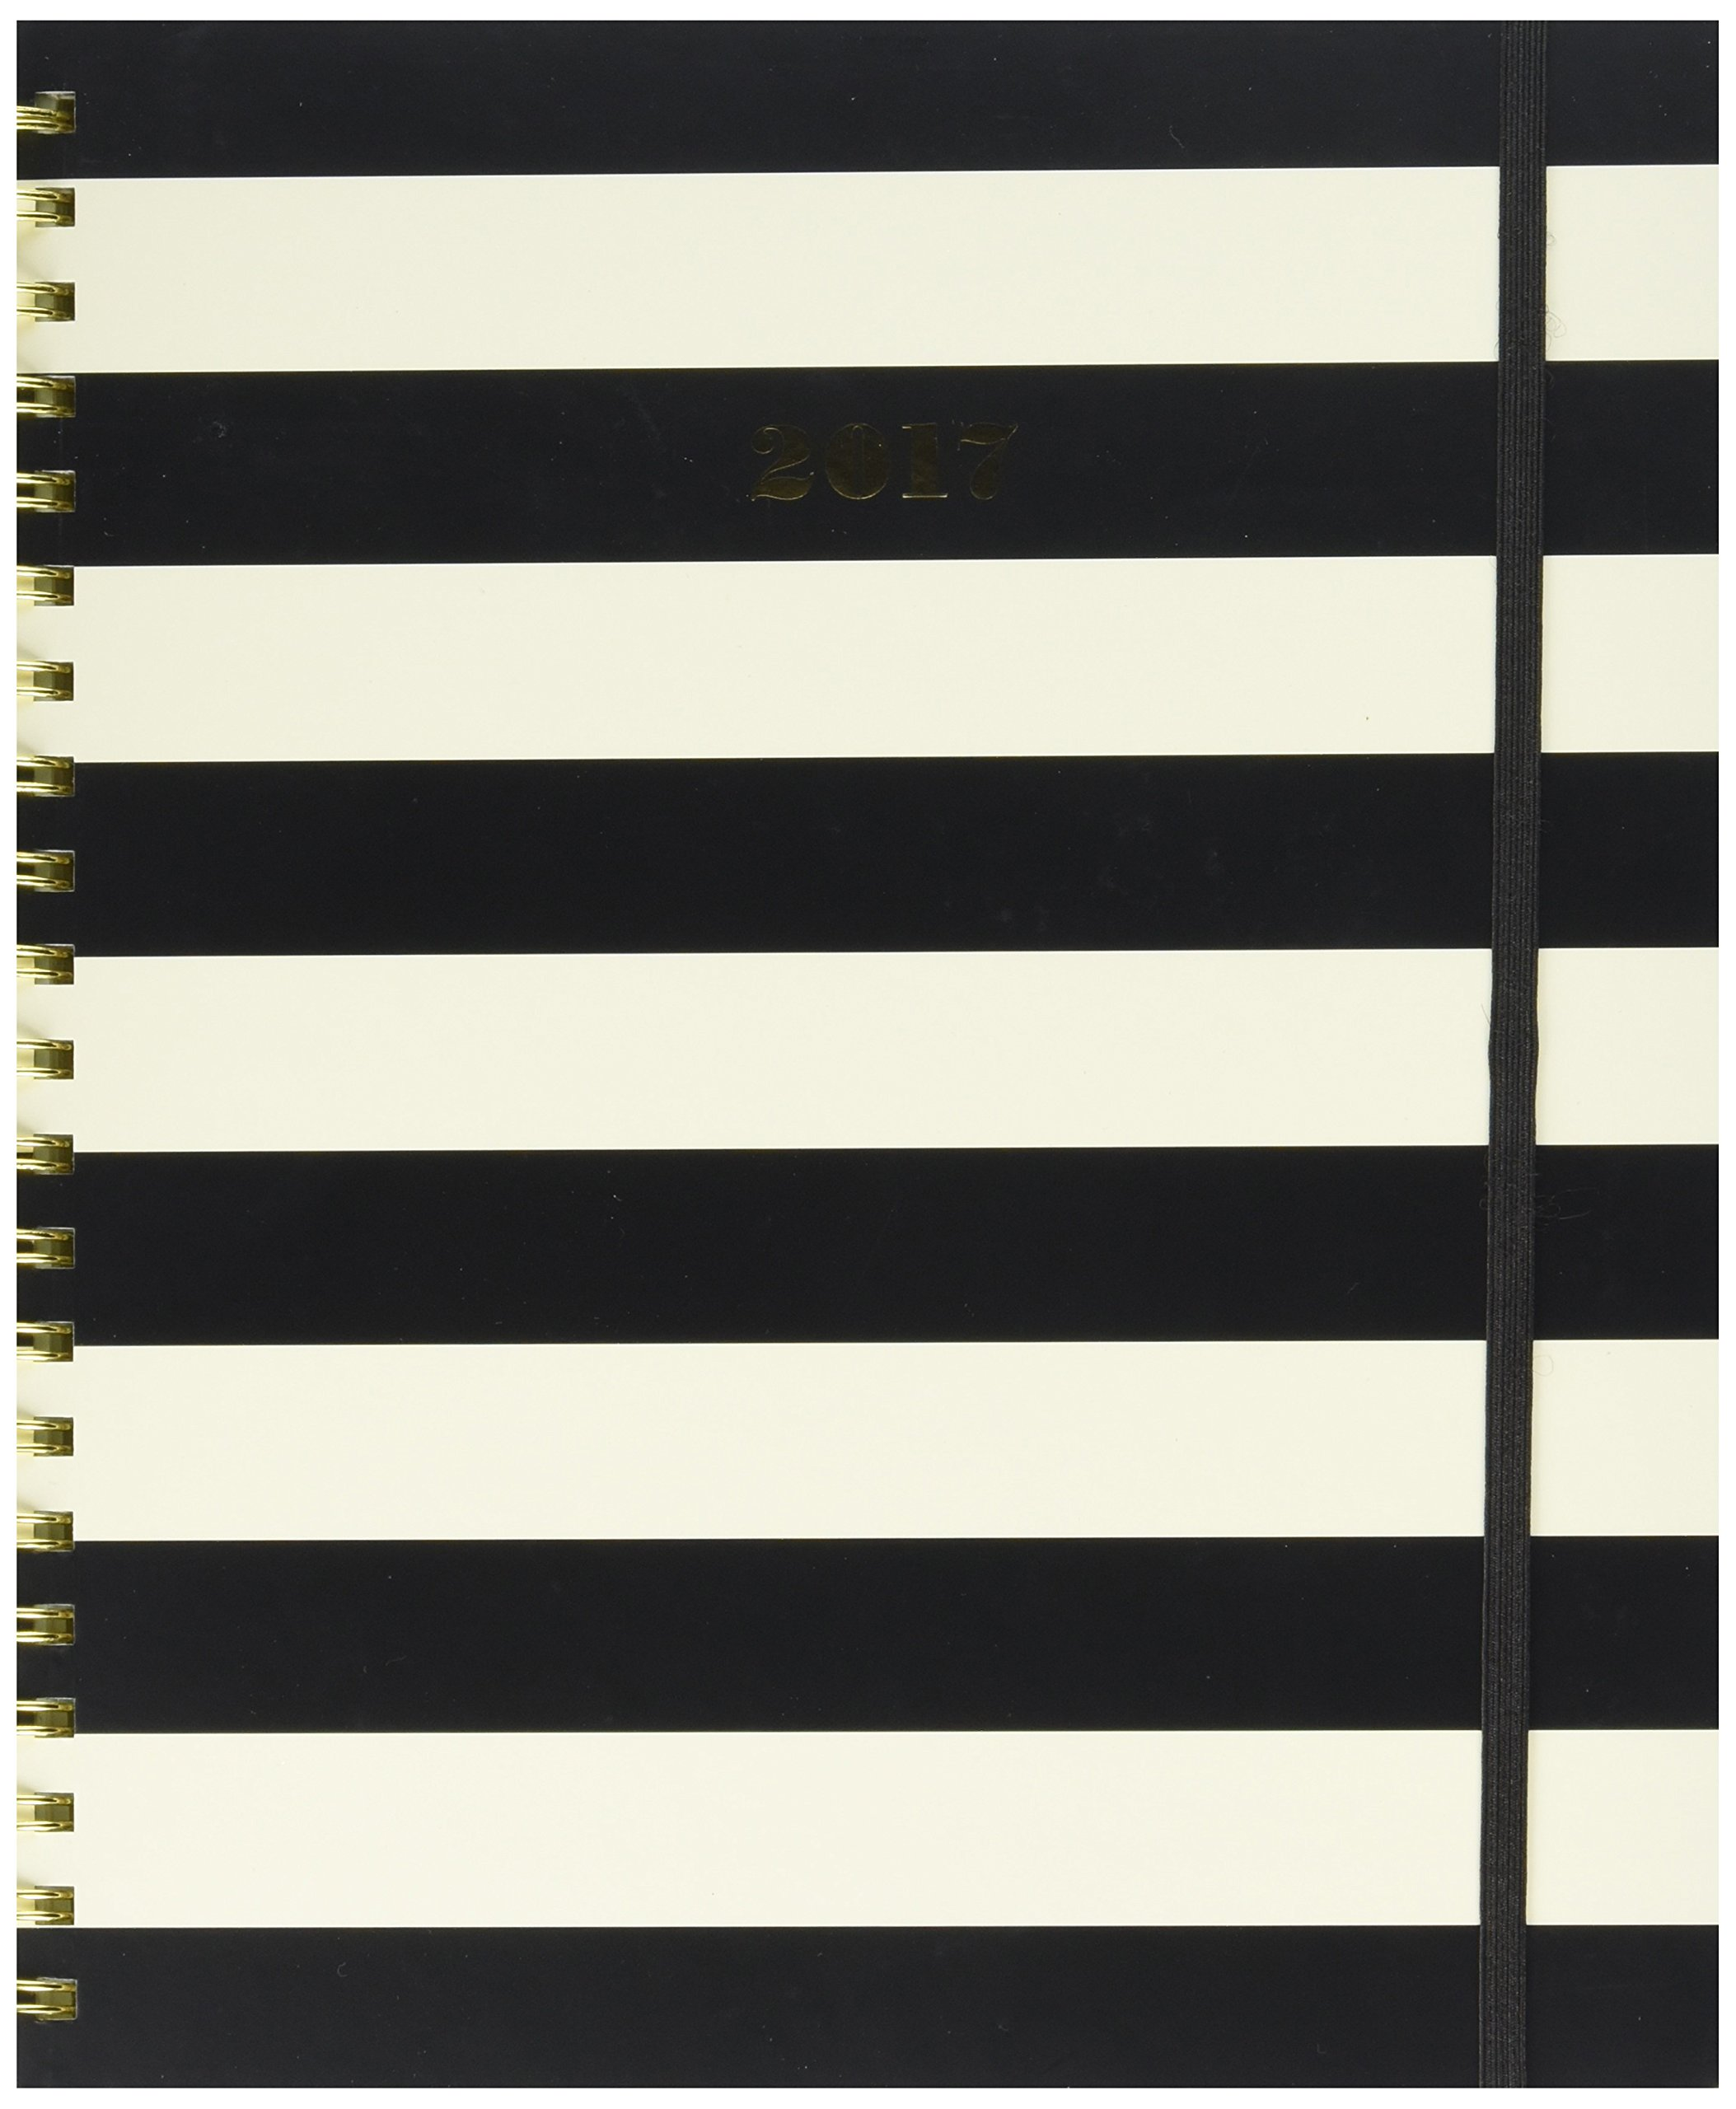 kate spade new york 2016-17 Jumbo Spiral Agenda, Black Stripe by Kate Spade New York